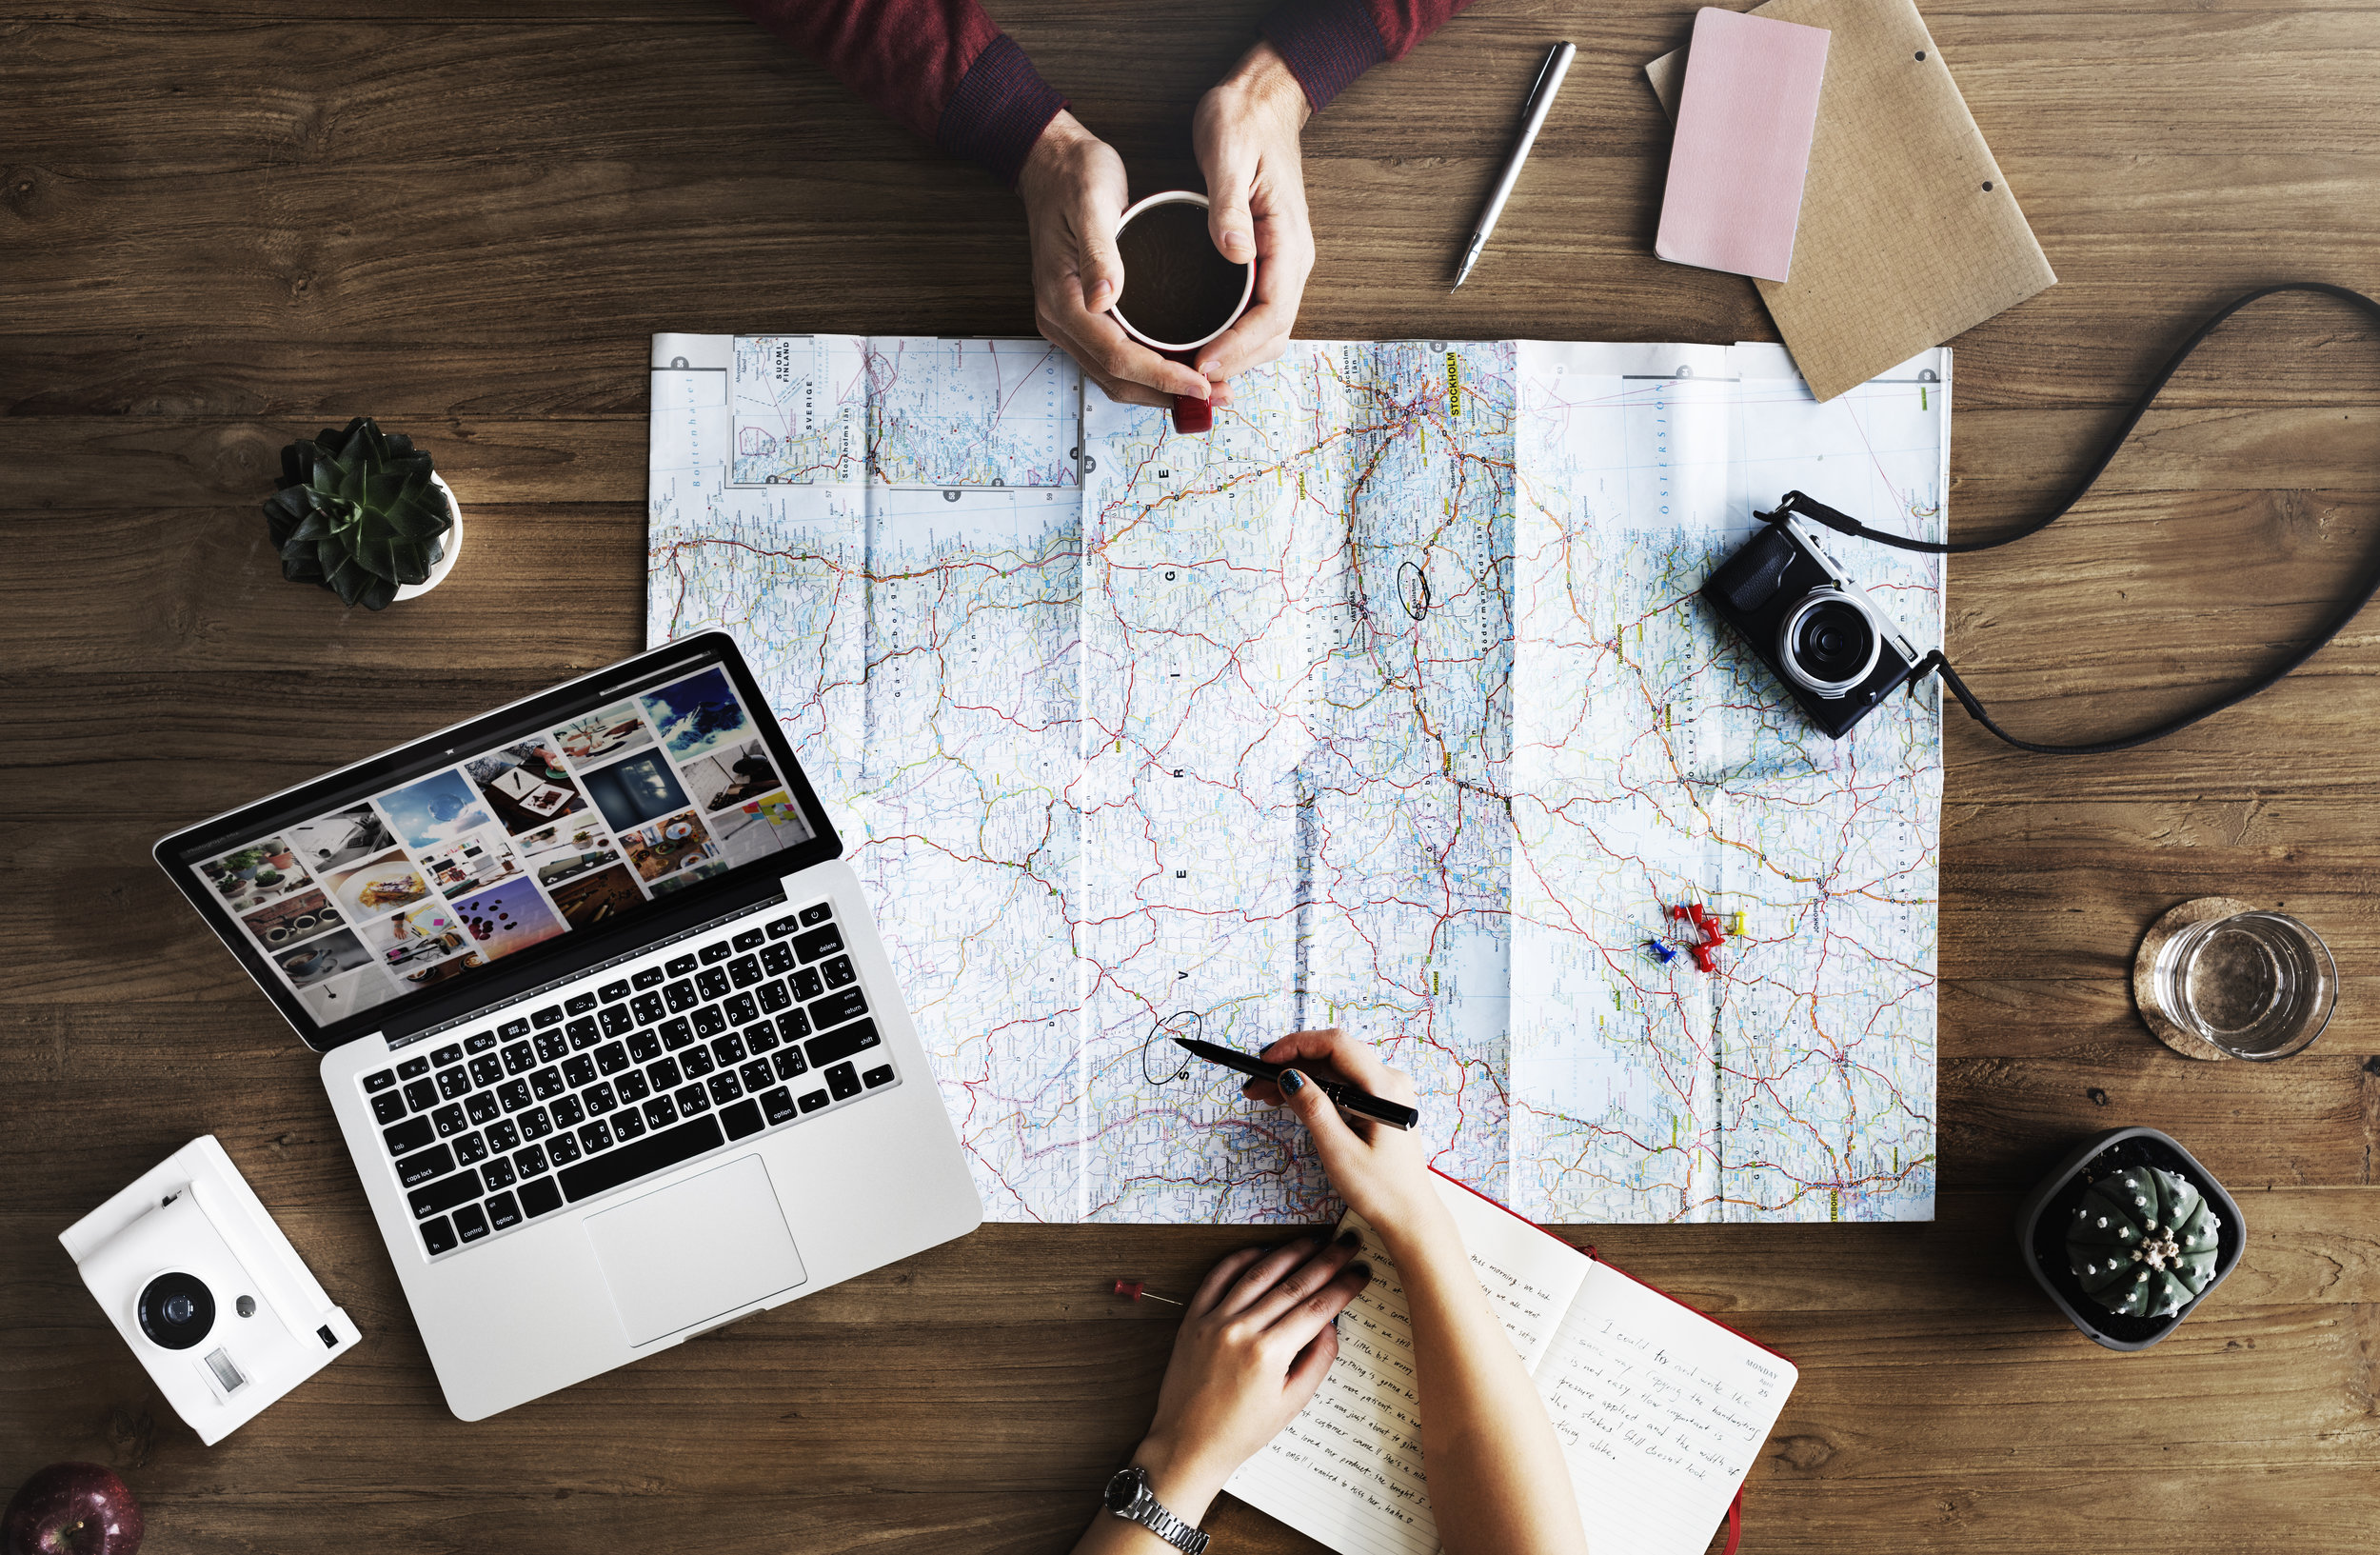 How to find the best deals on travel - August 24th, 2017